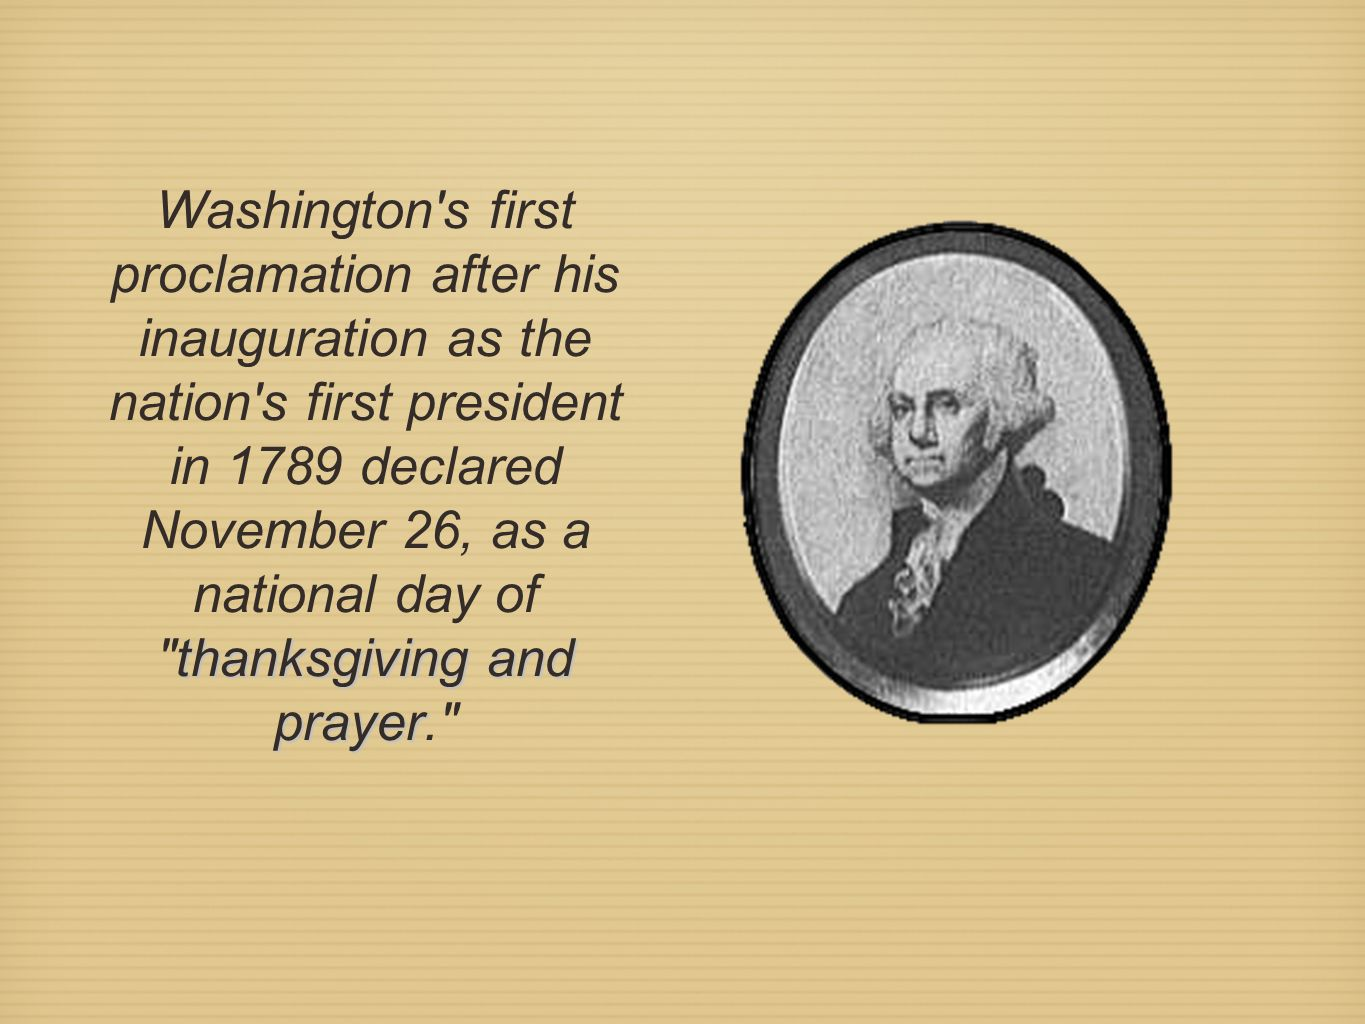 Washington s first proclamation after his inauguration as the nation s first president in 1789 declared November 26, as a national day of thanksgiving and prayer.